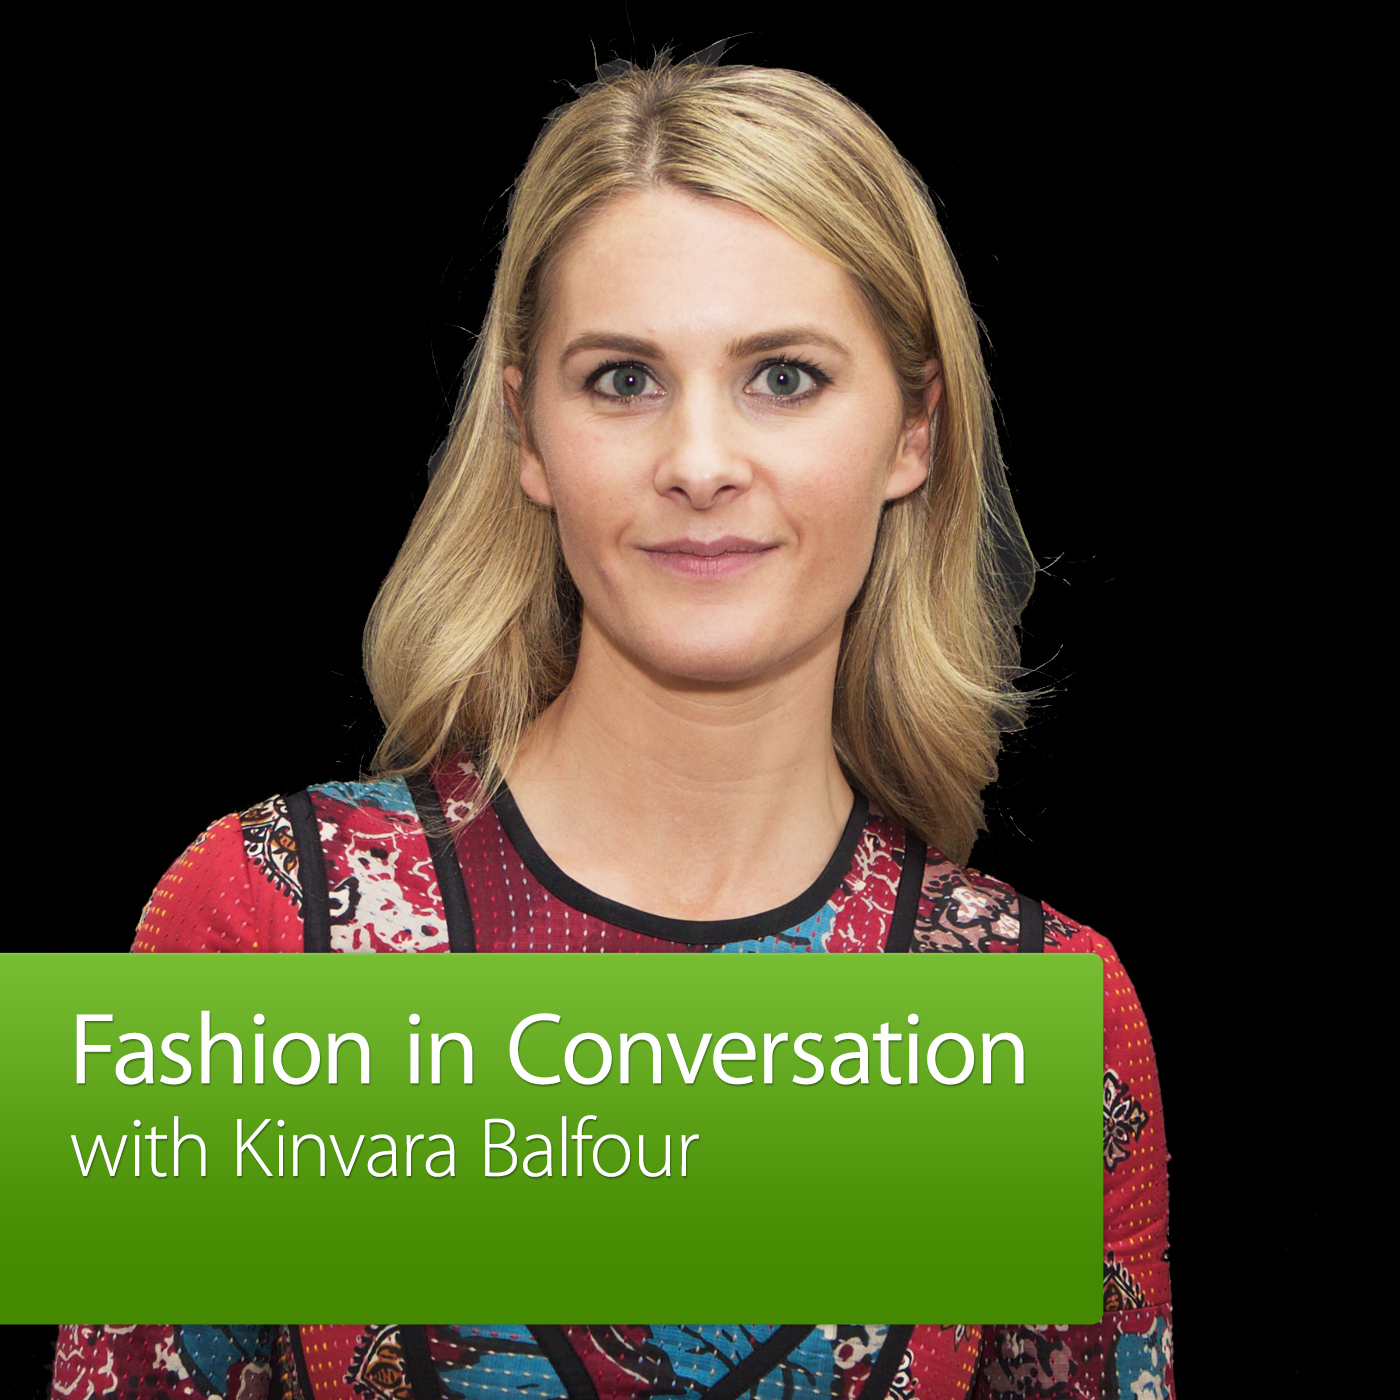 Fashion in Conversation with Kinvara Balfour